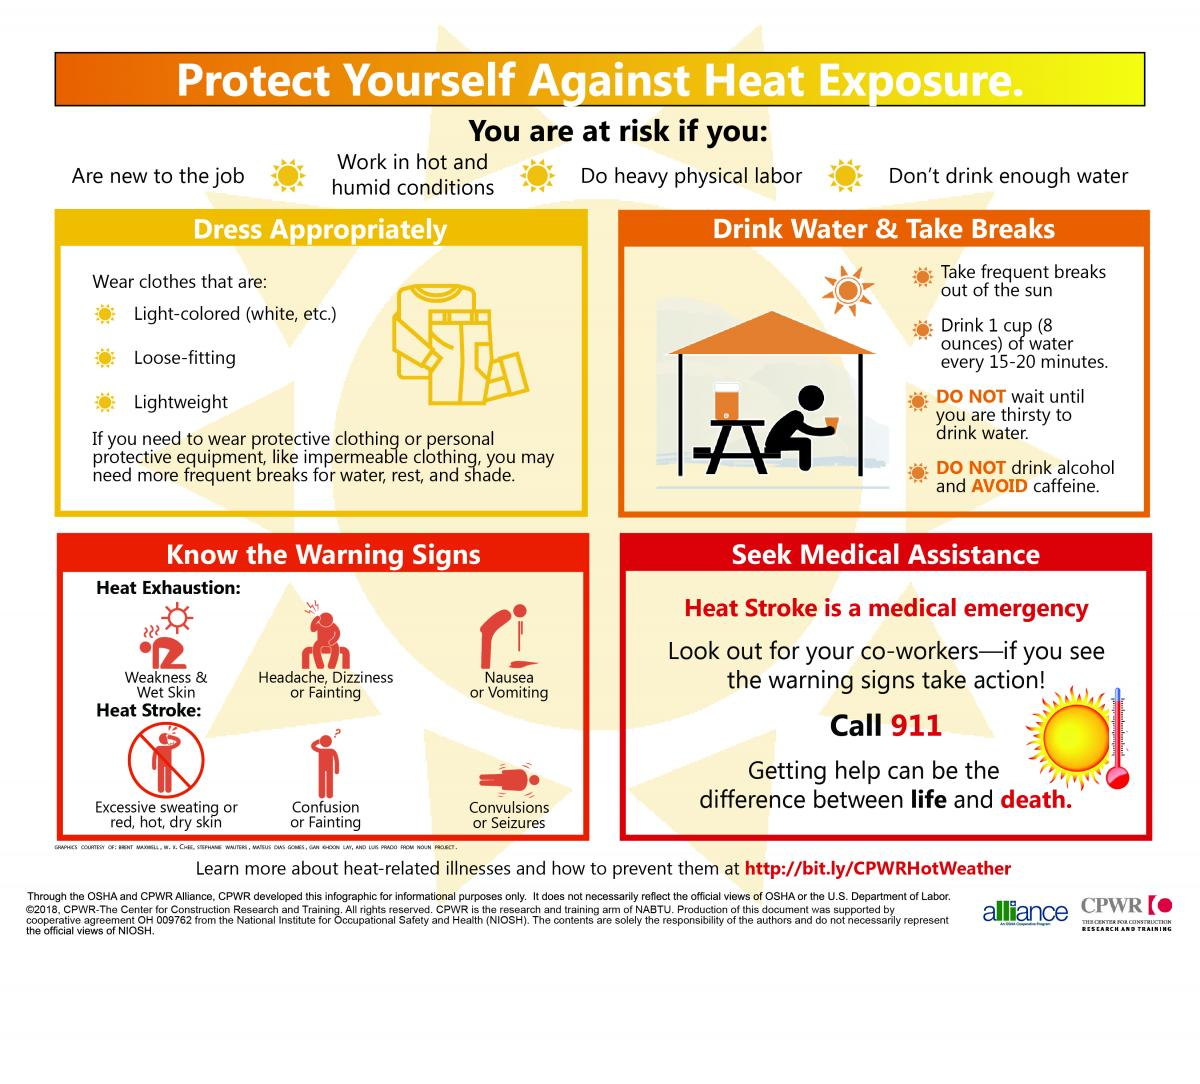 Protect yourself from heat